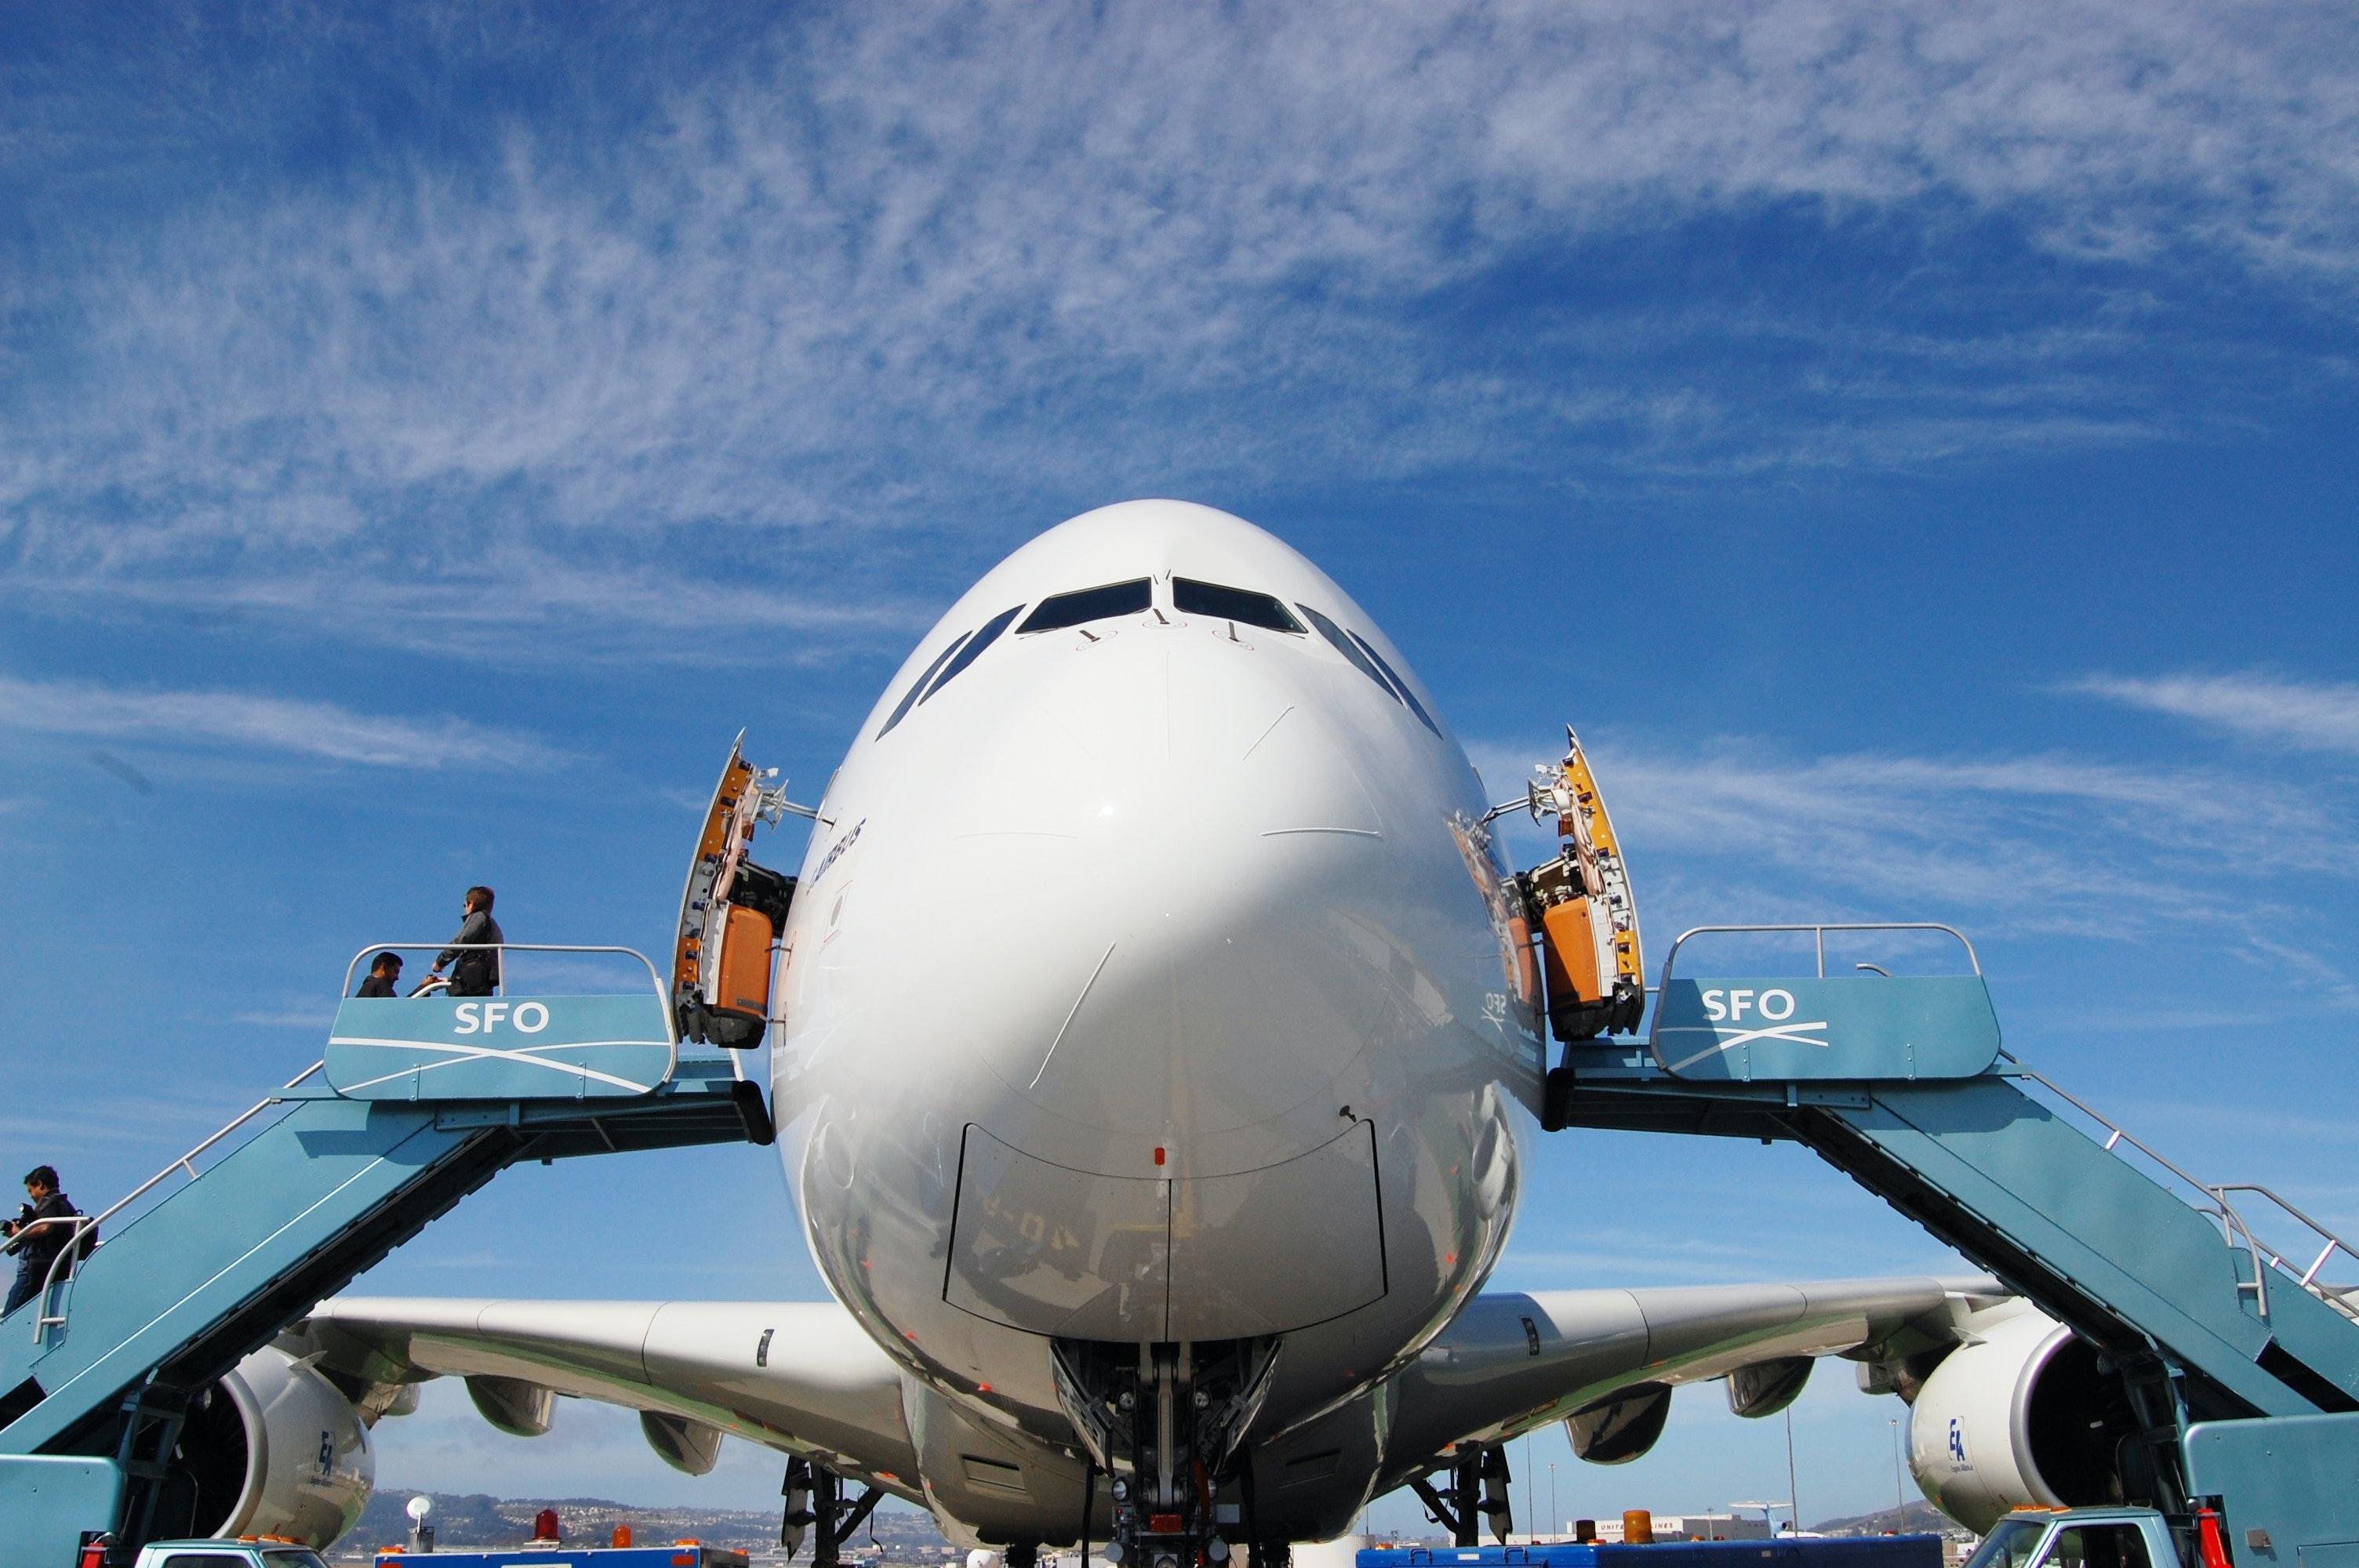 The Airbus A380 Wing Cracks An Engineer S Perspective